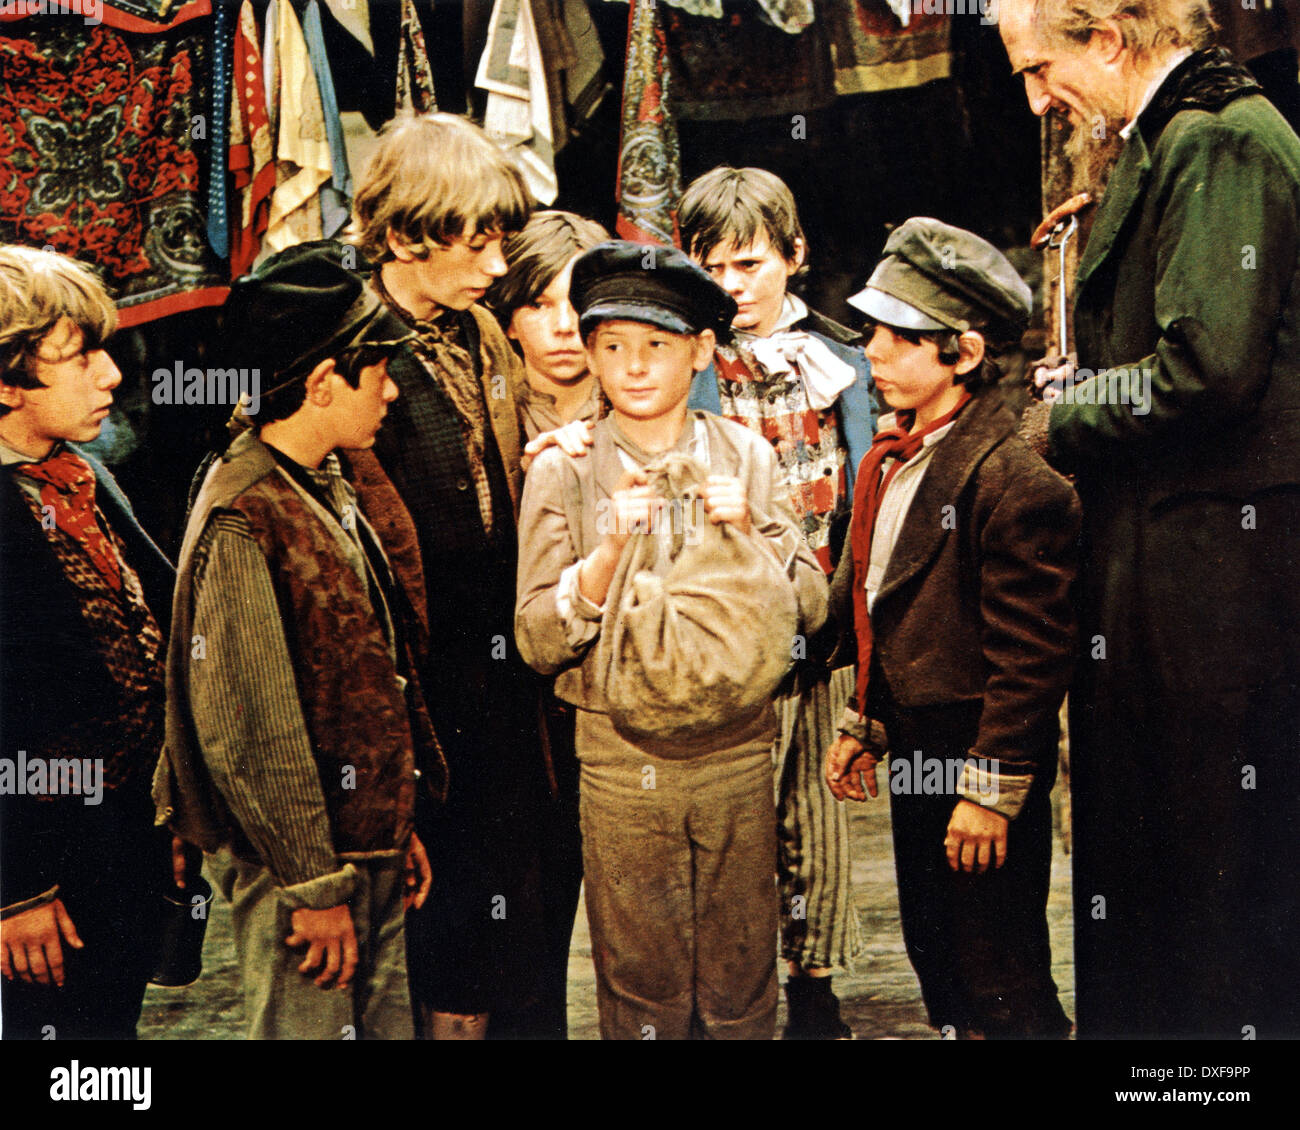 OLIVER ! 1968 Columbia Pictures film with Mark Lester as Oliver and Ron Moody at right as Fagin - Stock Image